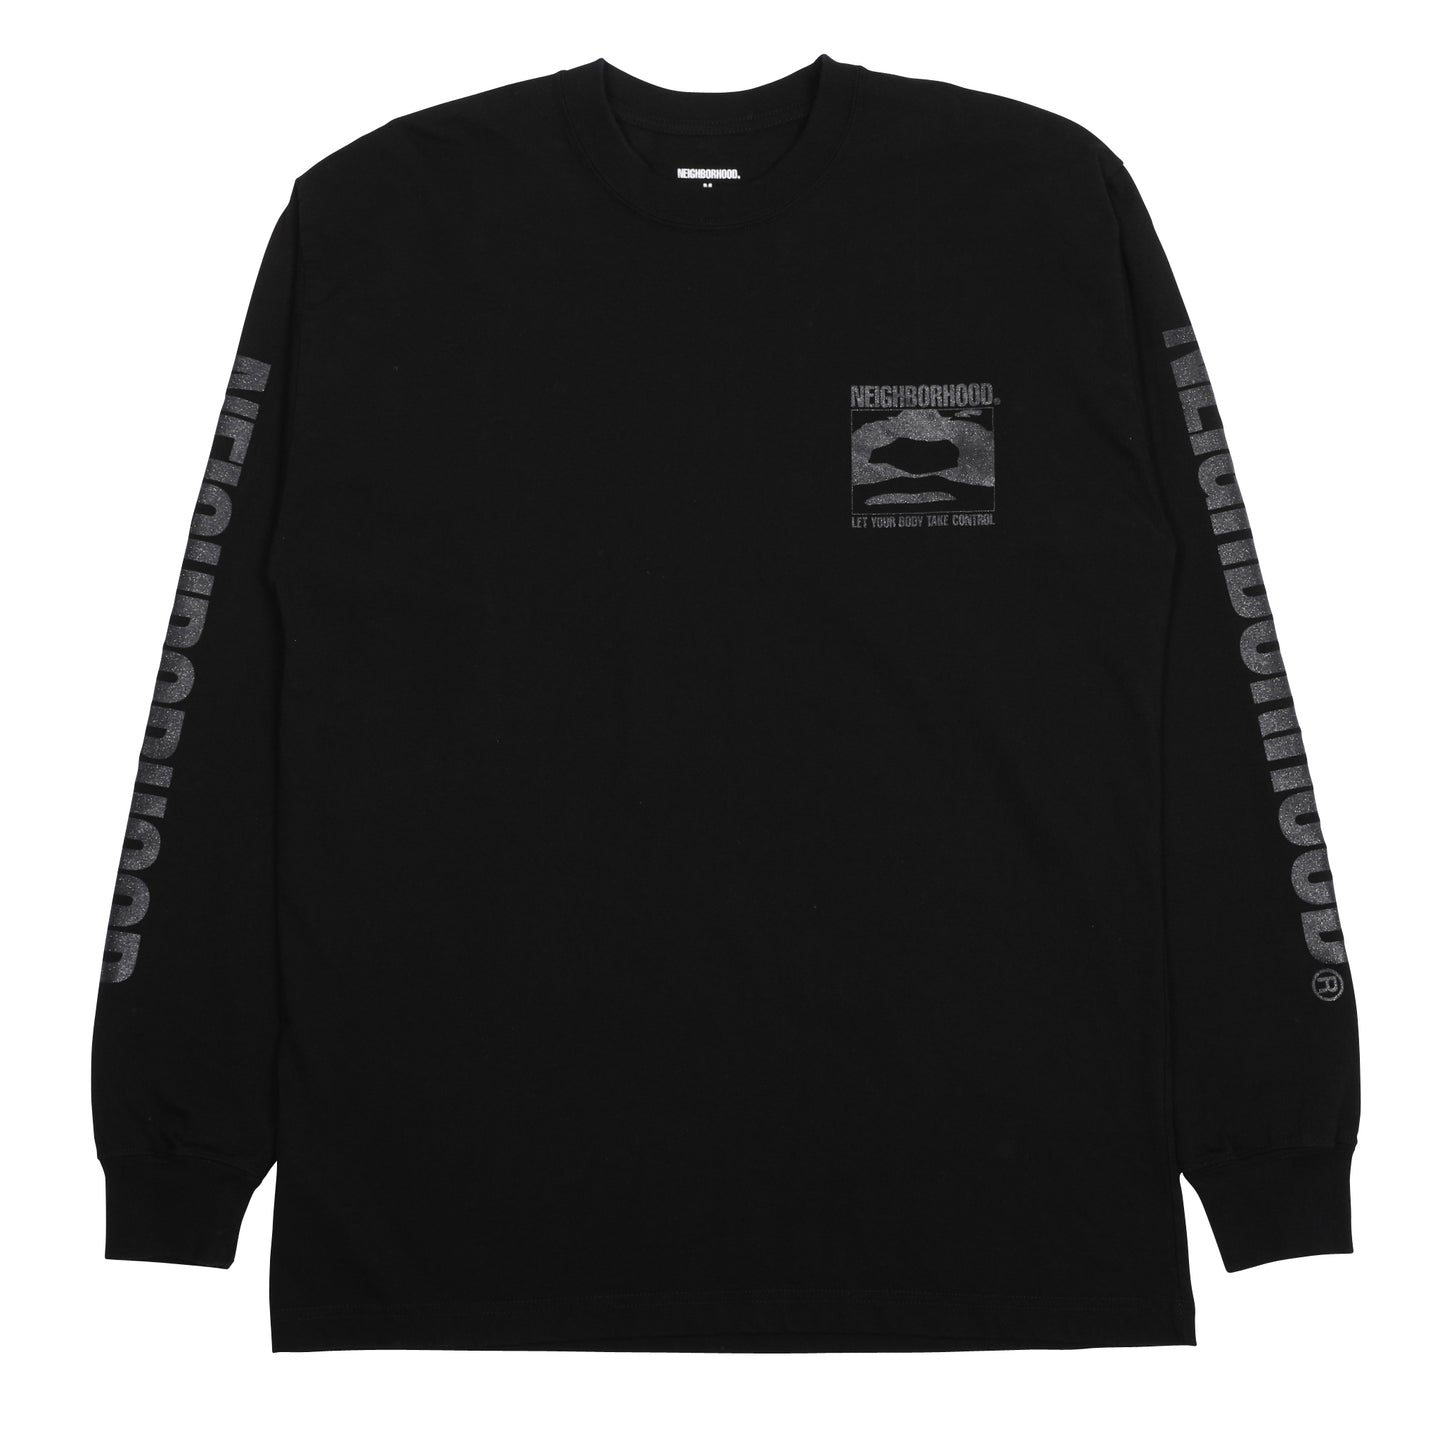 Neighborhood God LS T-Shirt Black